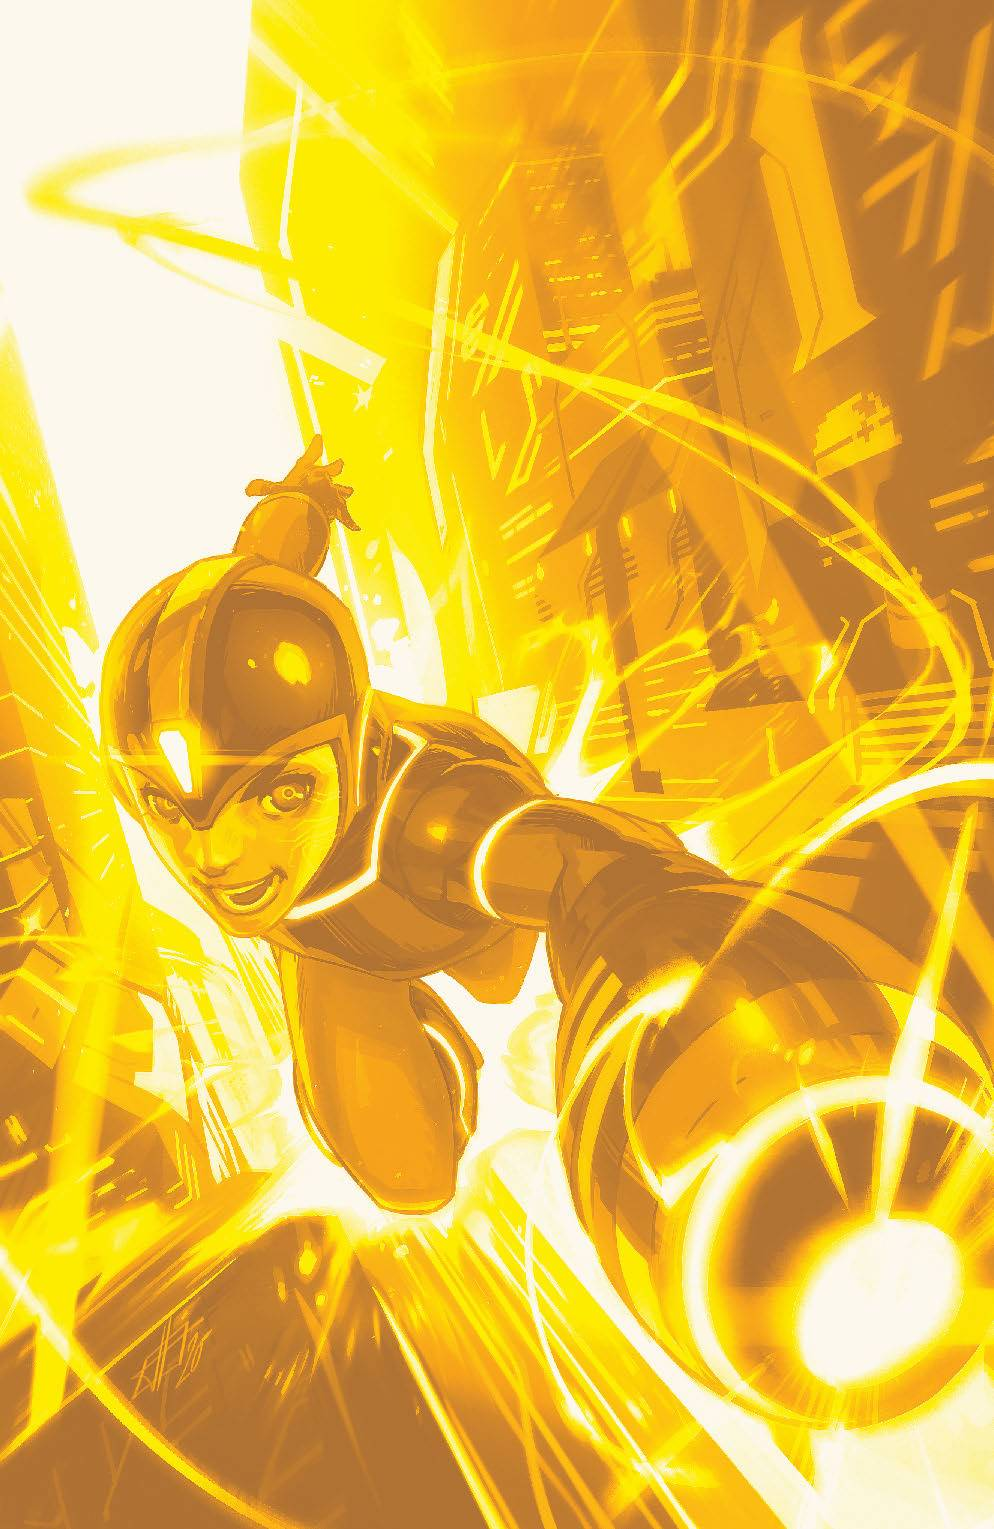 790100_mega-man-fully-charged-1-100-copy-cover-gold-foil ComicList: BOOM! Studios New Releases for 08/26/2020